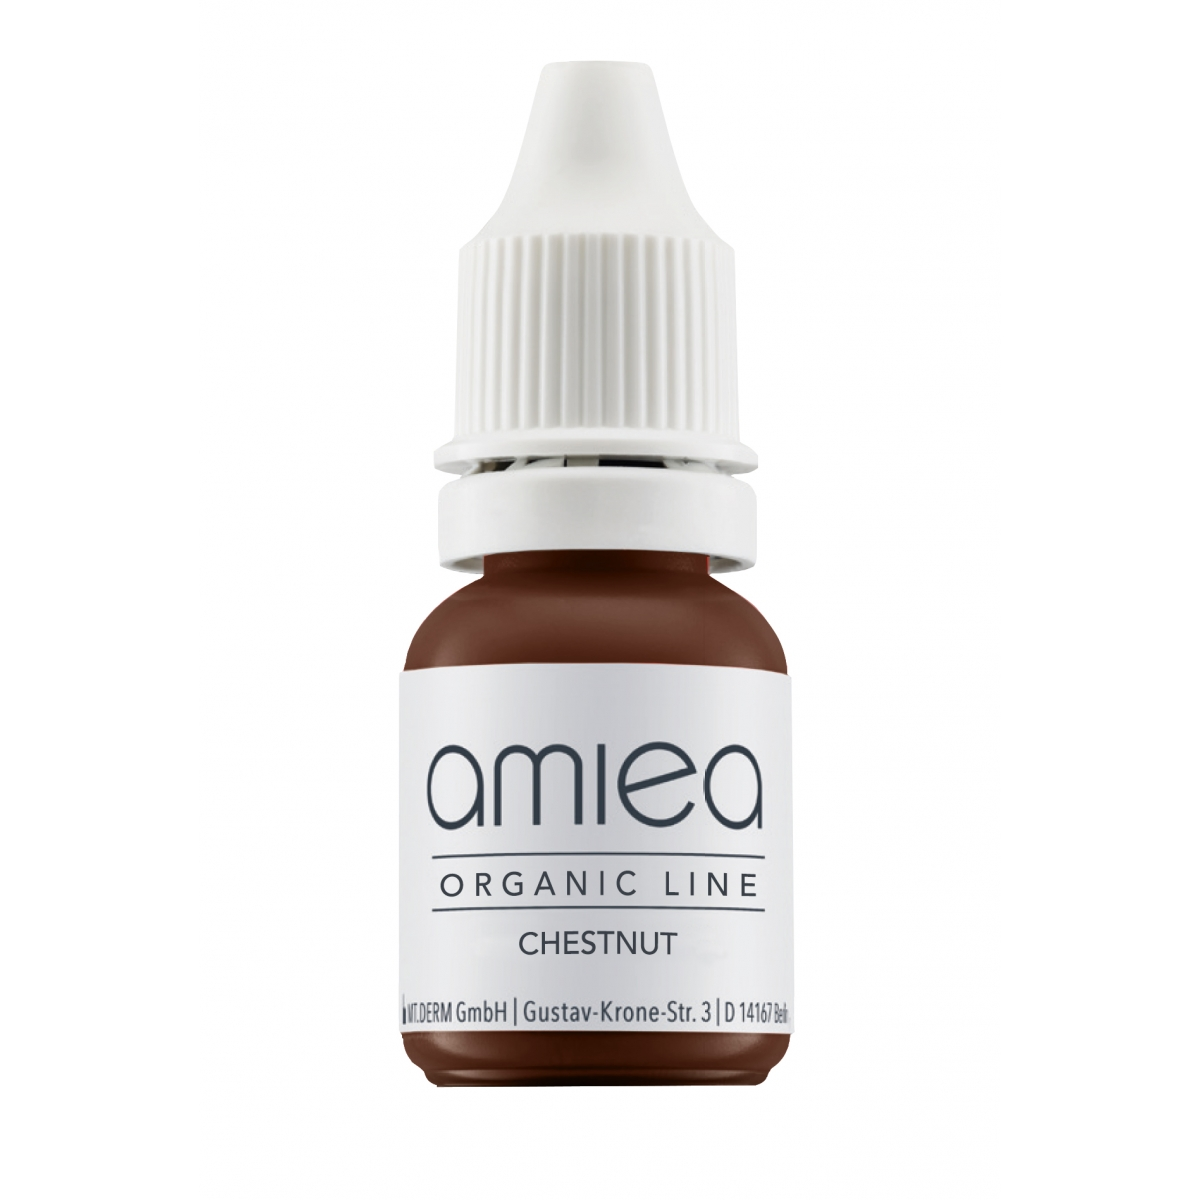 ORGANIC LINE (5ml)  - PIGMENT CHESTNUT ORGANICLINE AMIEA (5 ml)